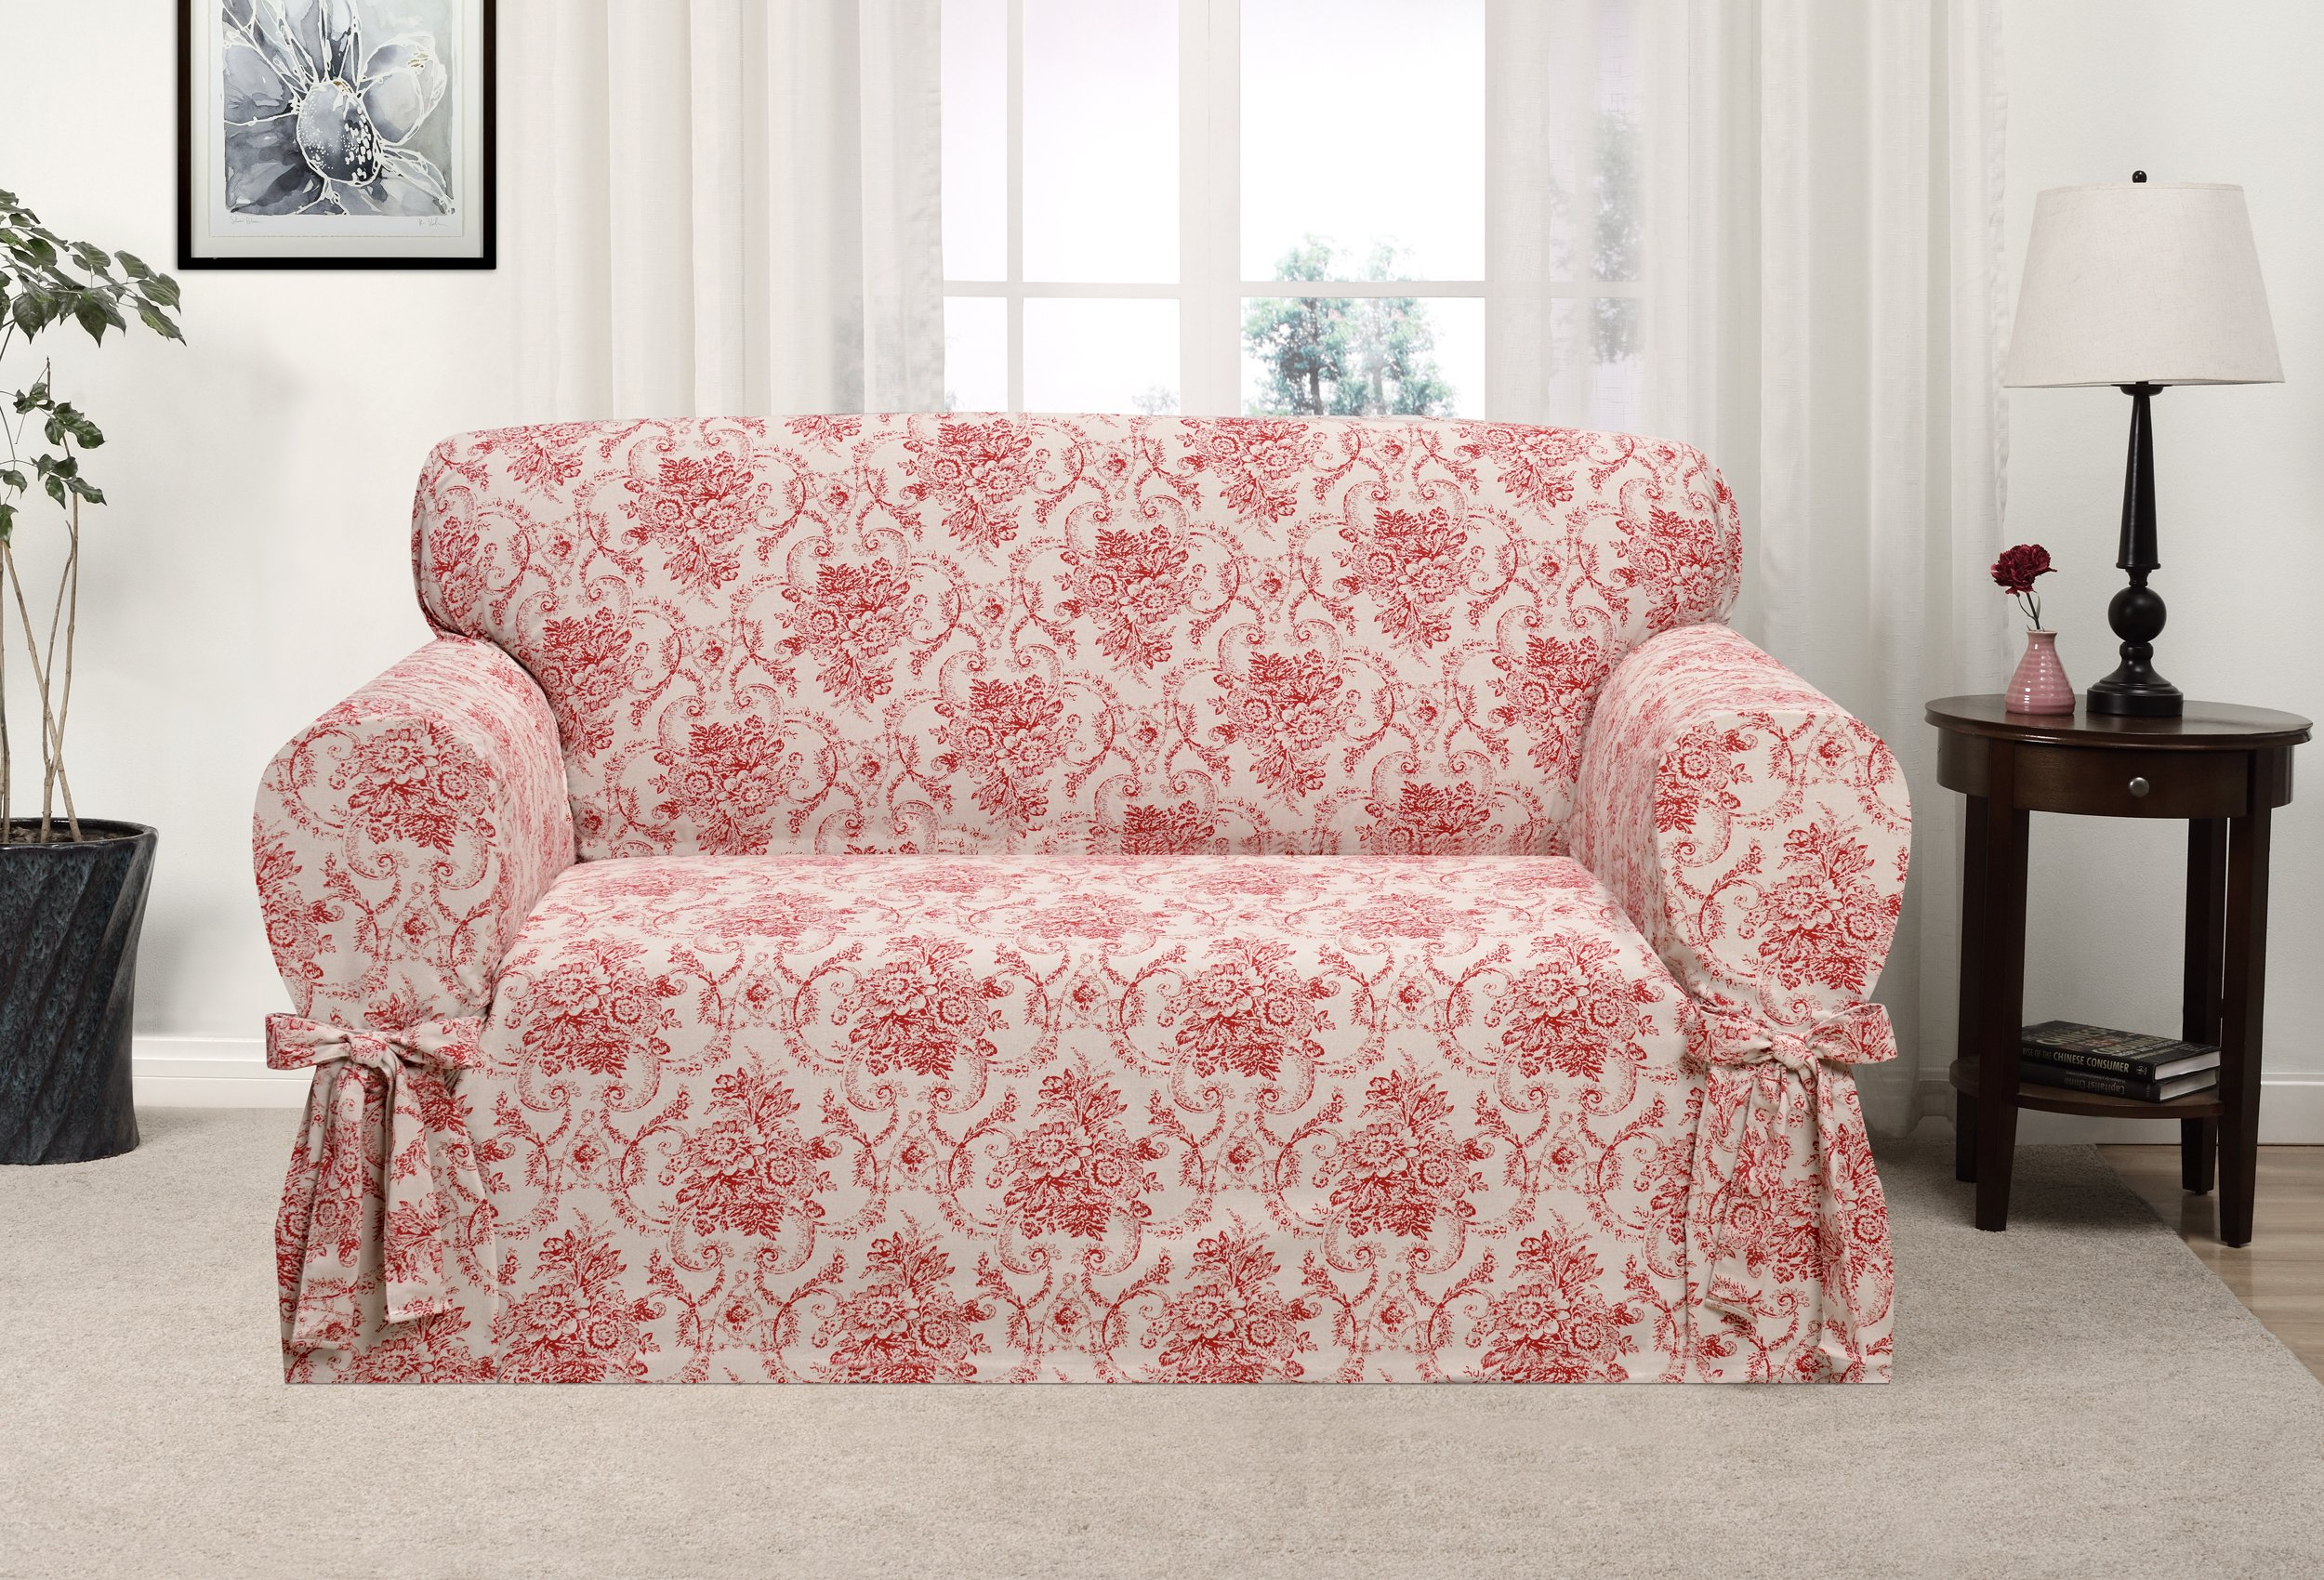 Madison Chateau Slipcover, Loveseat, Red